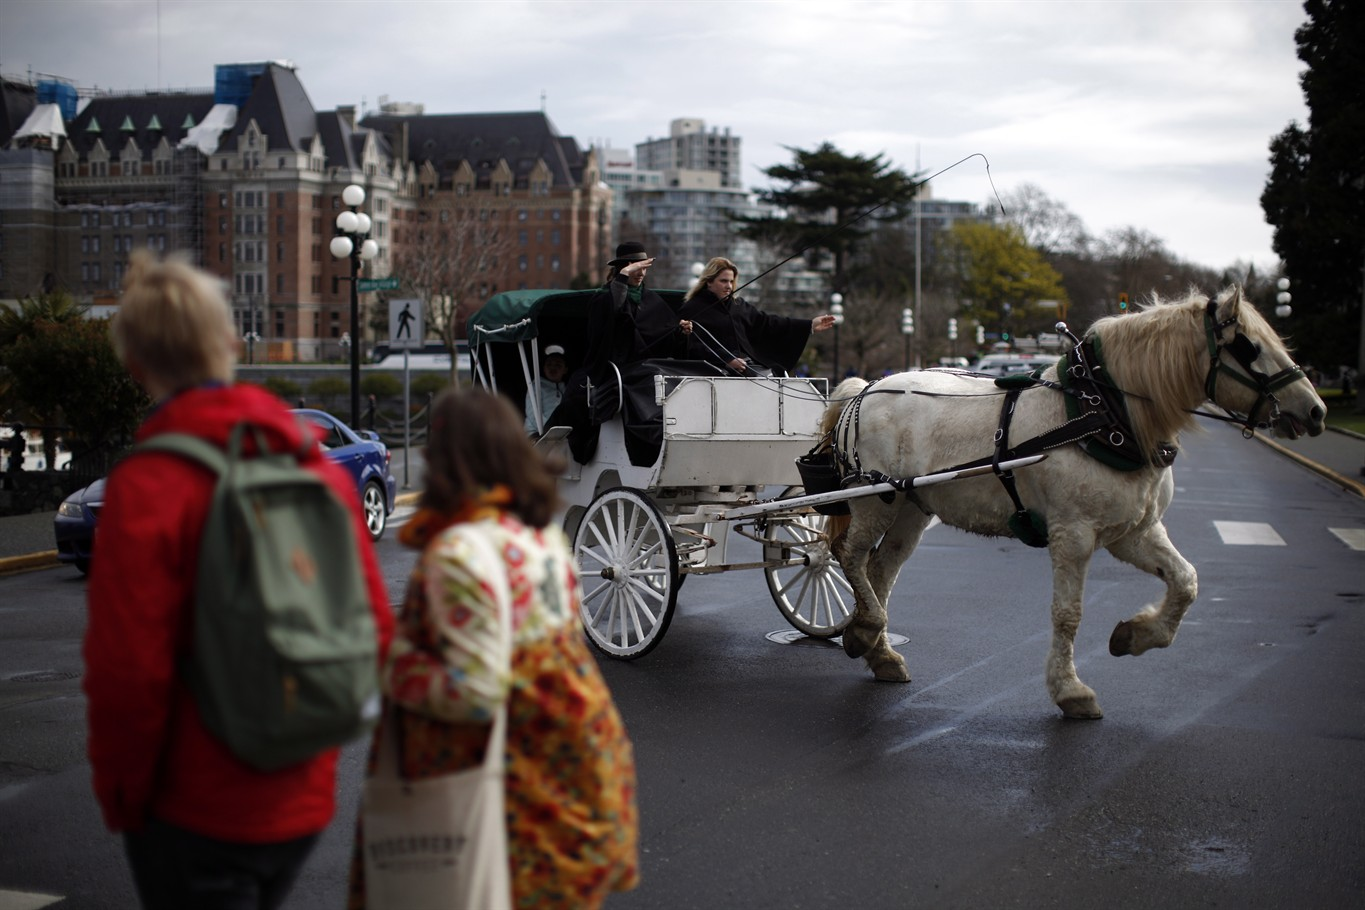 After the Ride is Over: Evaluating the Welfare of Carriage Horses